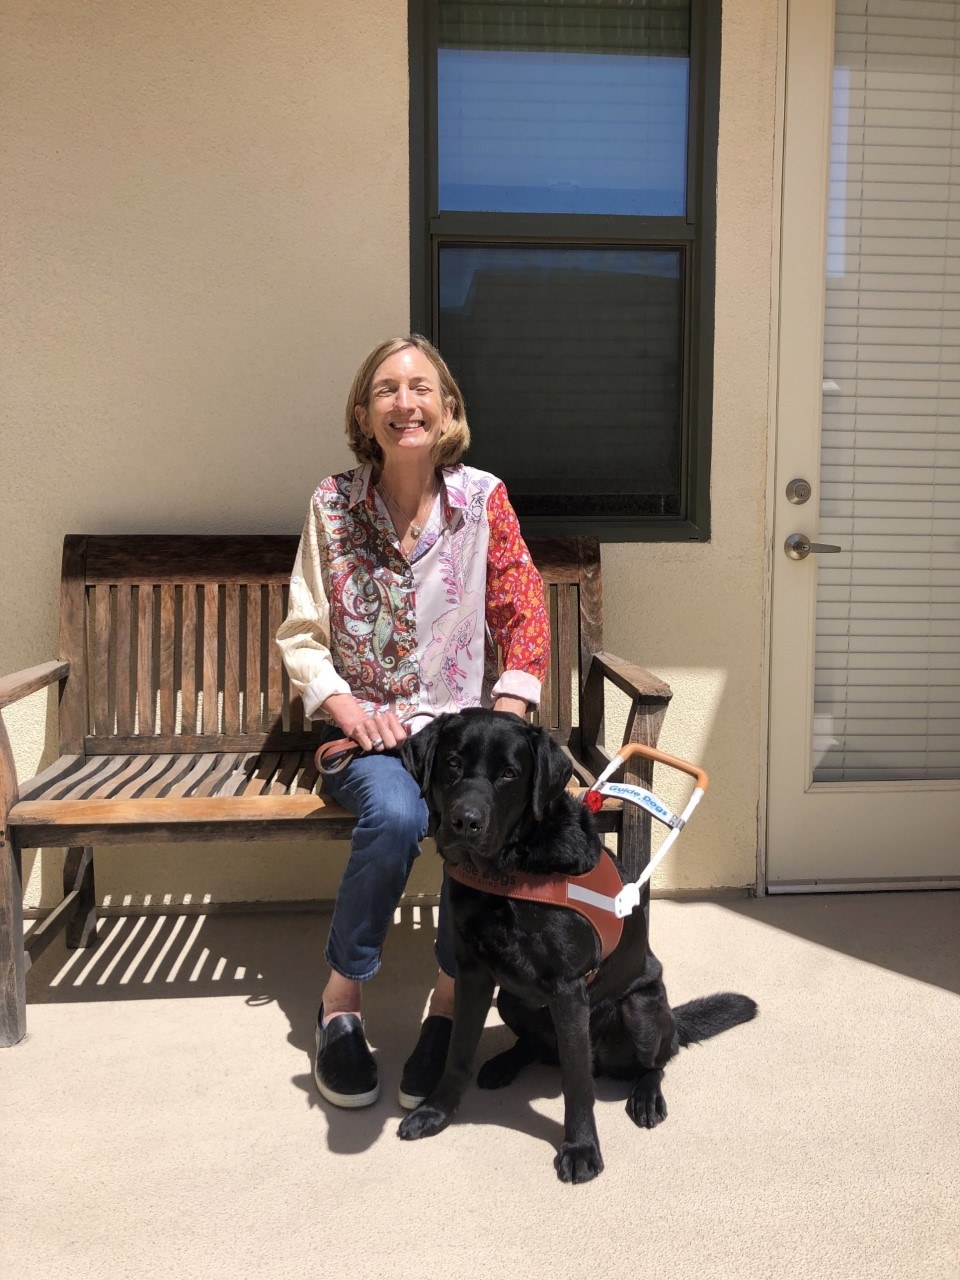 Kelly is seated on a sunny bench beside her black Lab guide dog.